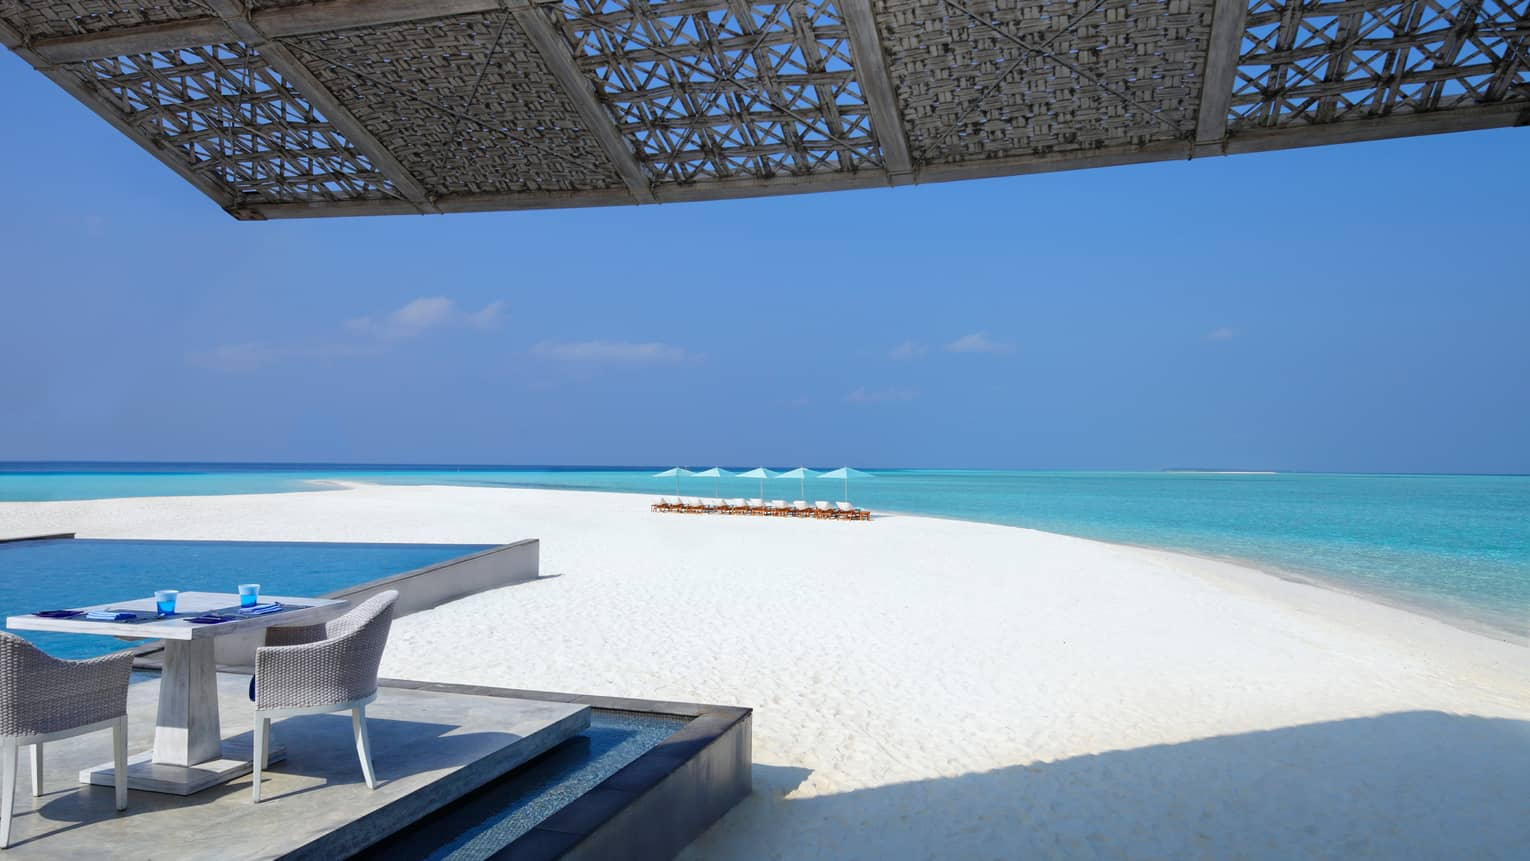 Woven roof, small white wicker patio, table on patio platform by long white sand beach, ocean